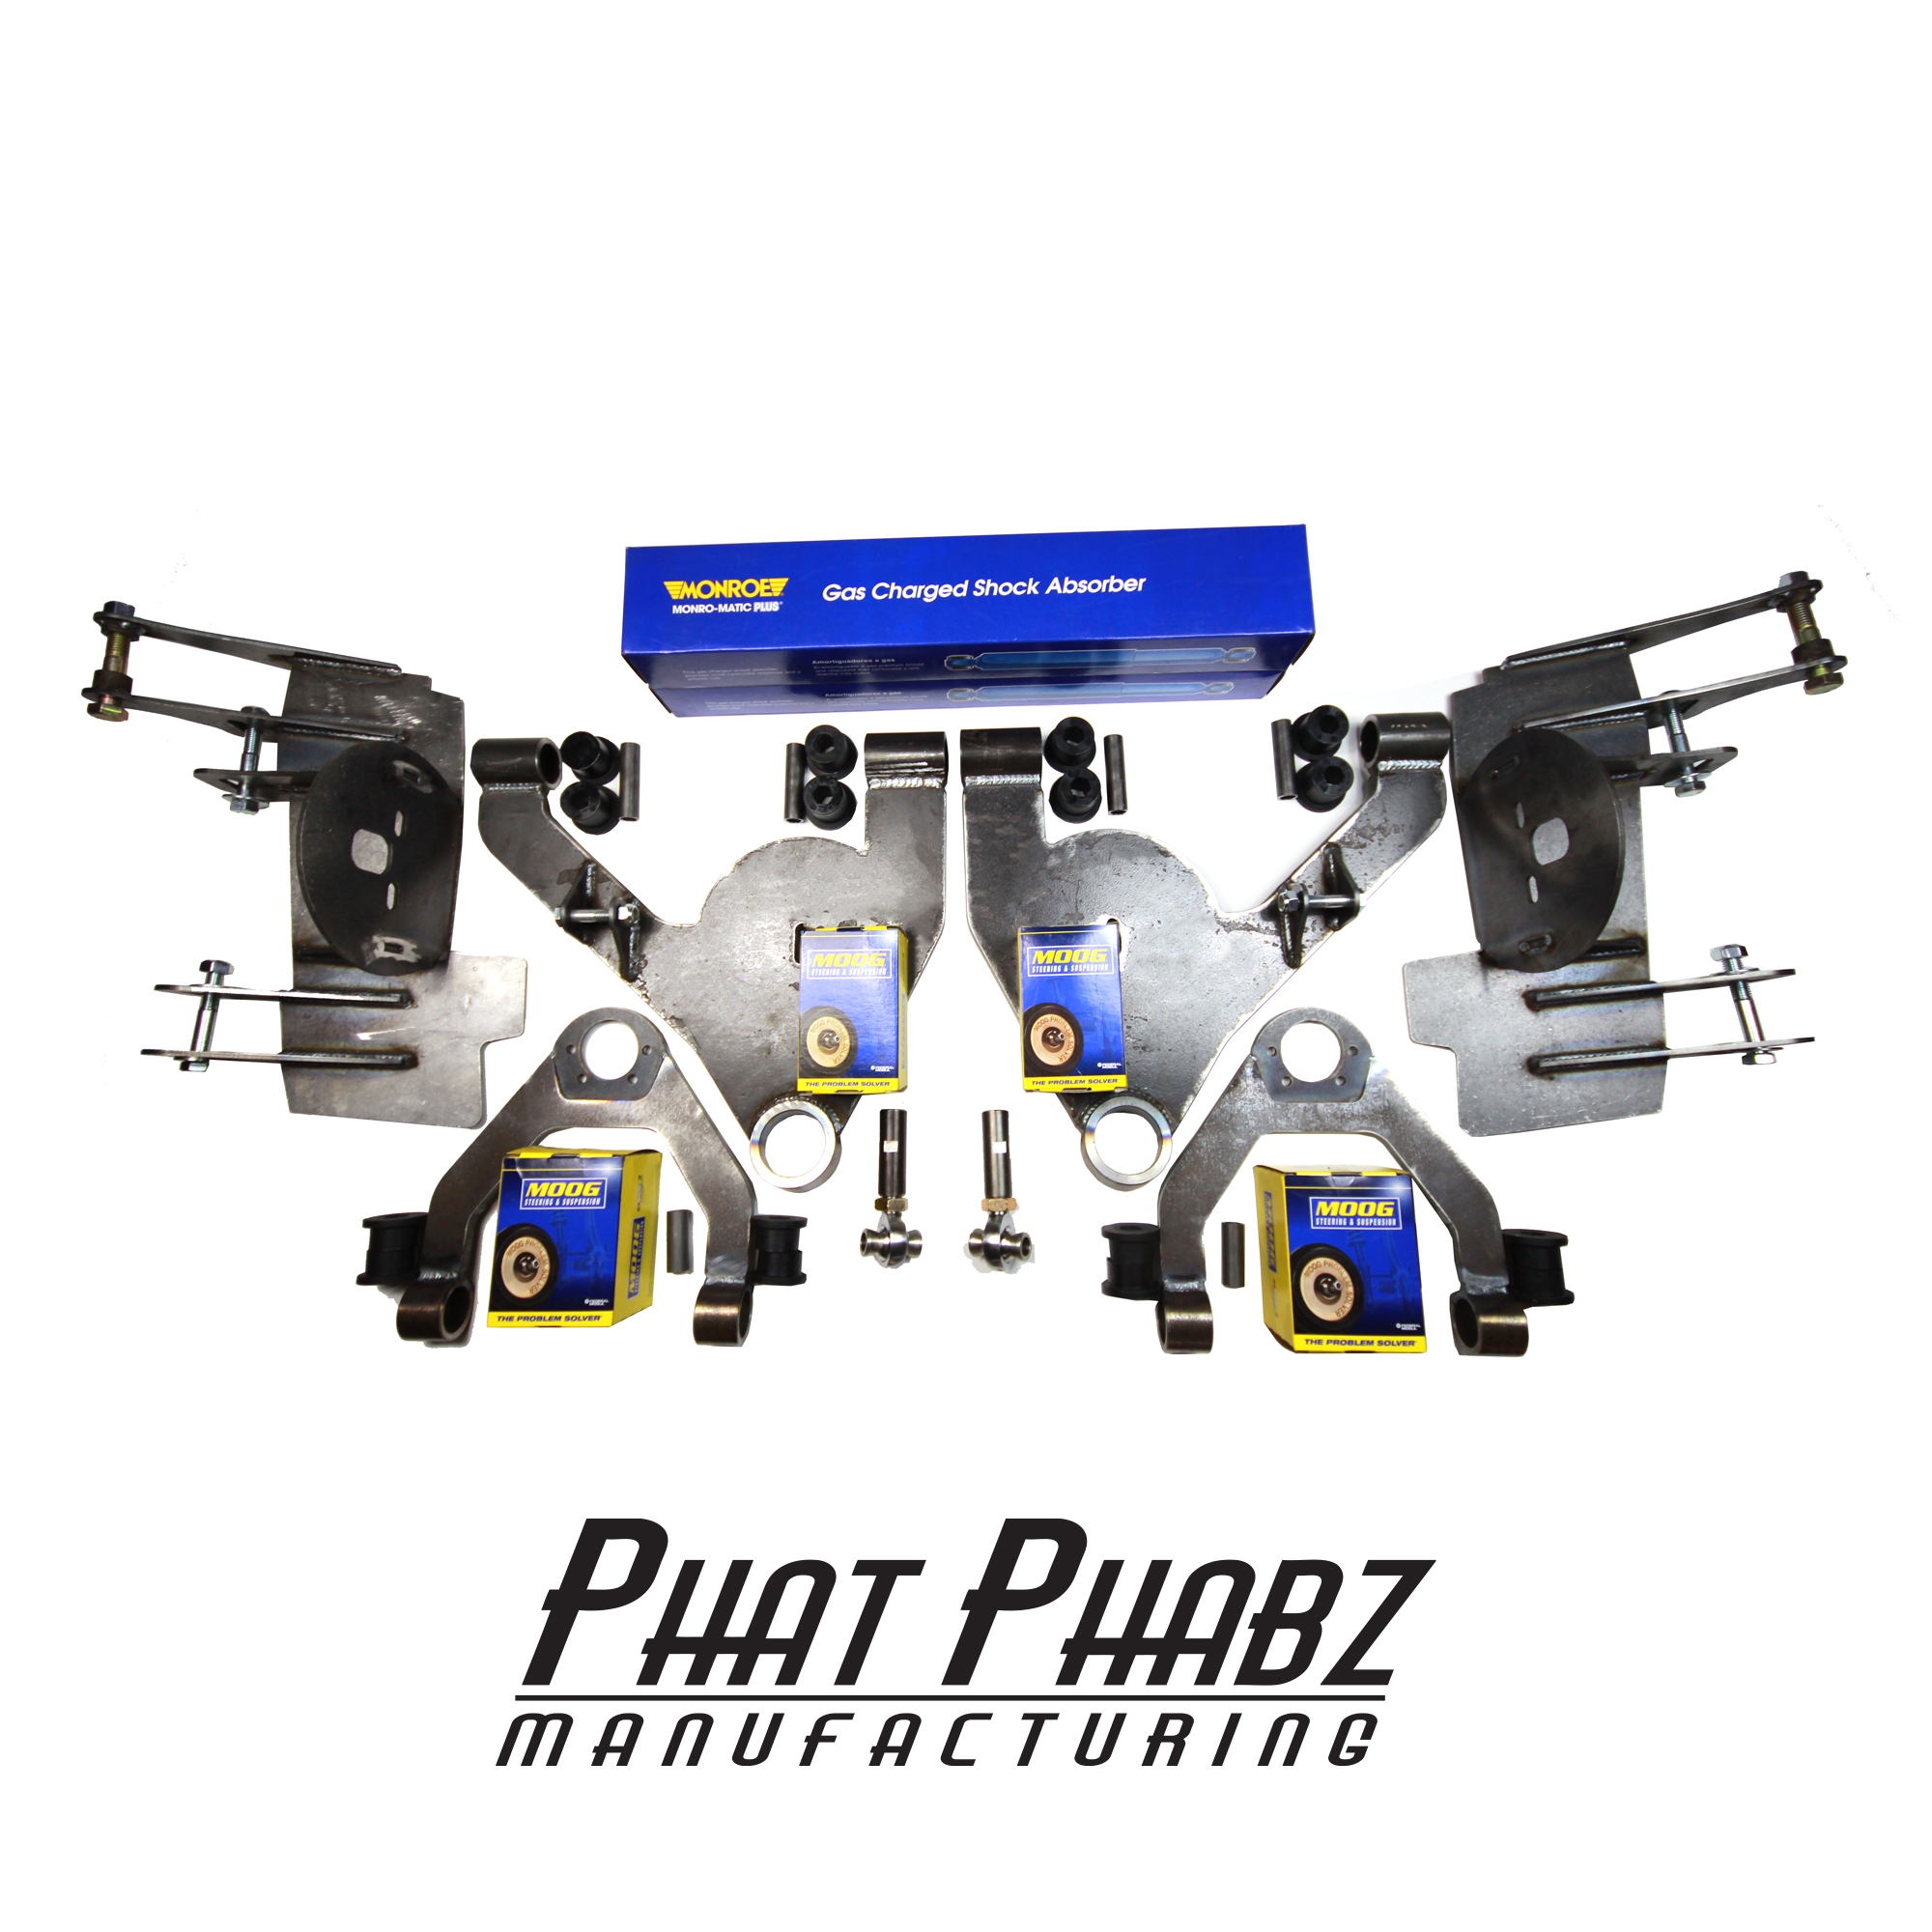 "PHA 1001 Phat Phabz 99'- 06' Silverao/Sierra Front Kit Features a 1"" narrowed Track Width, Moog Ball Joints, Monroe Shocks, W/ Steering Kit with 3/4"" chromoly heims ** Will lay 22""-28"" wheels ** ** Price includes $100 spindle core charge **"